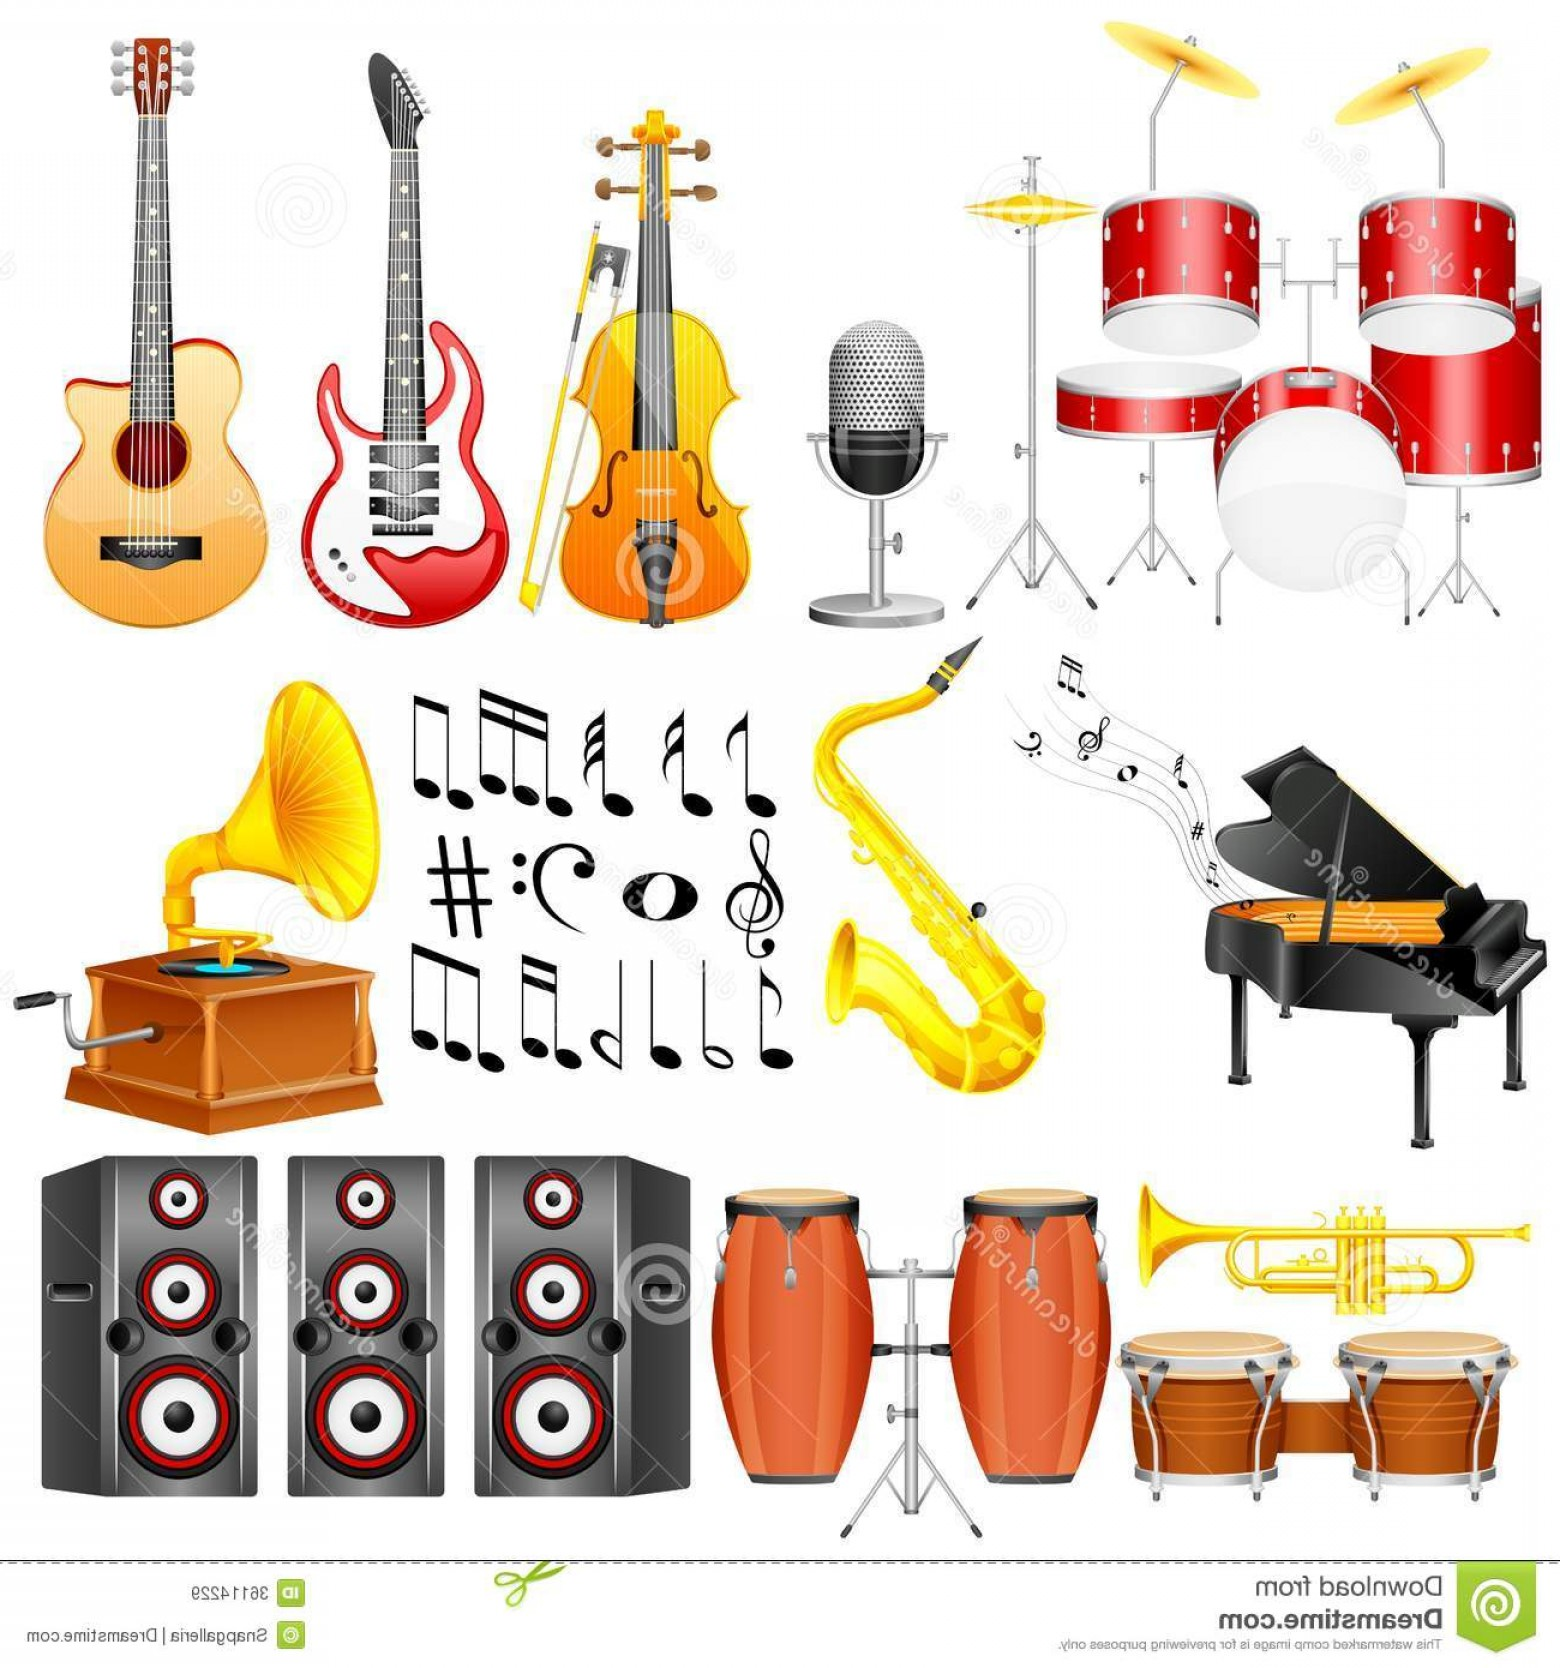 Musical Keyboard Vector: Royalty Free Stock Images Music Instrument Easy To Edit Vector Illustration Collection Image